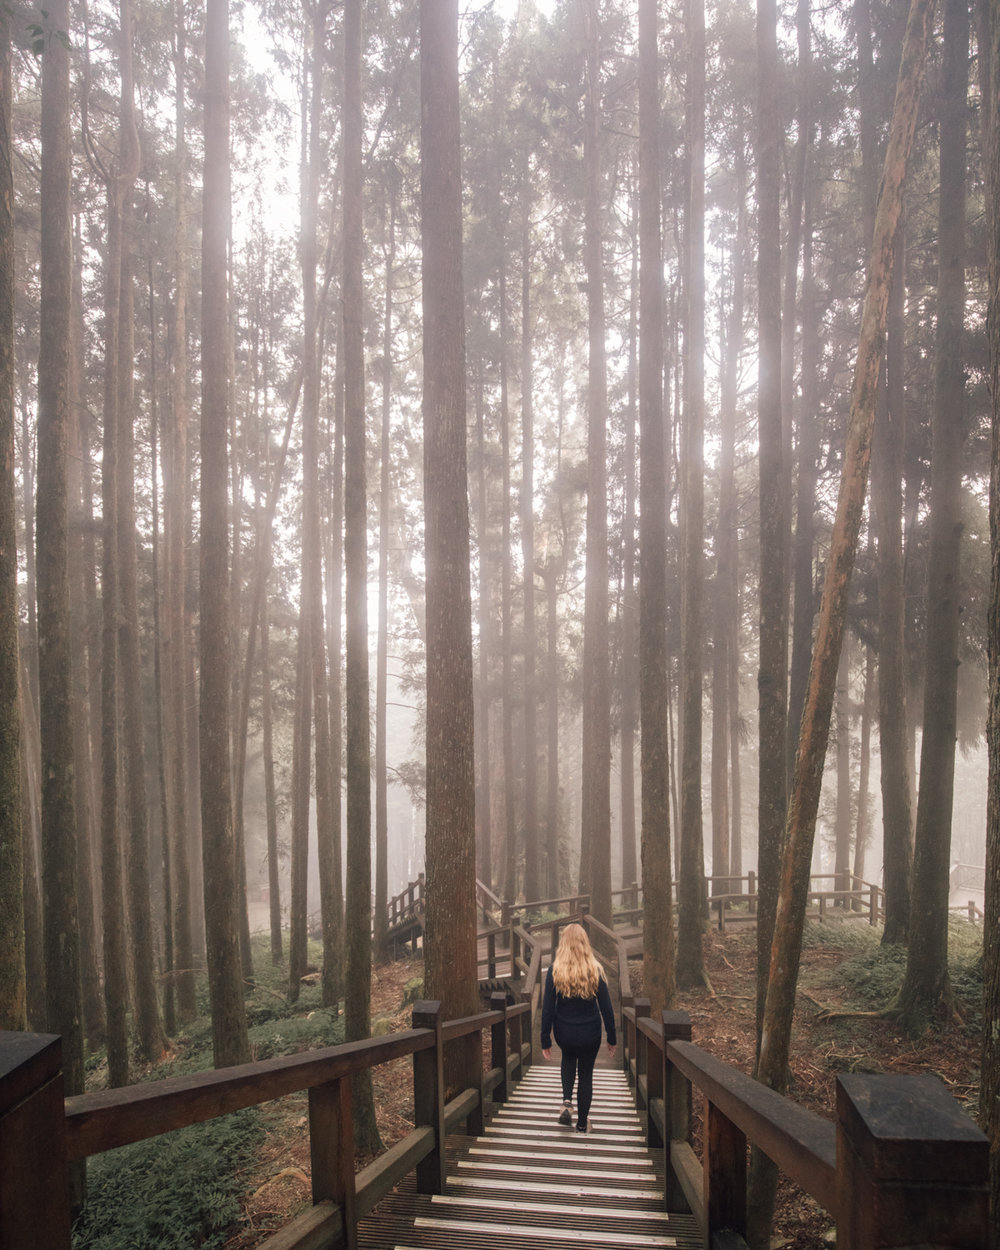 The trees and boardwalks in Alishan